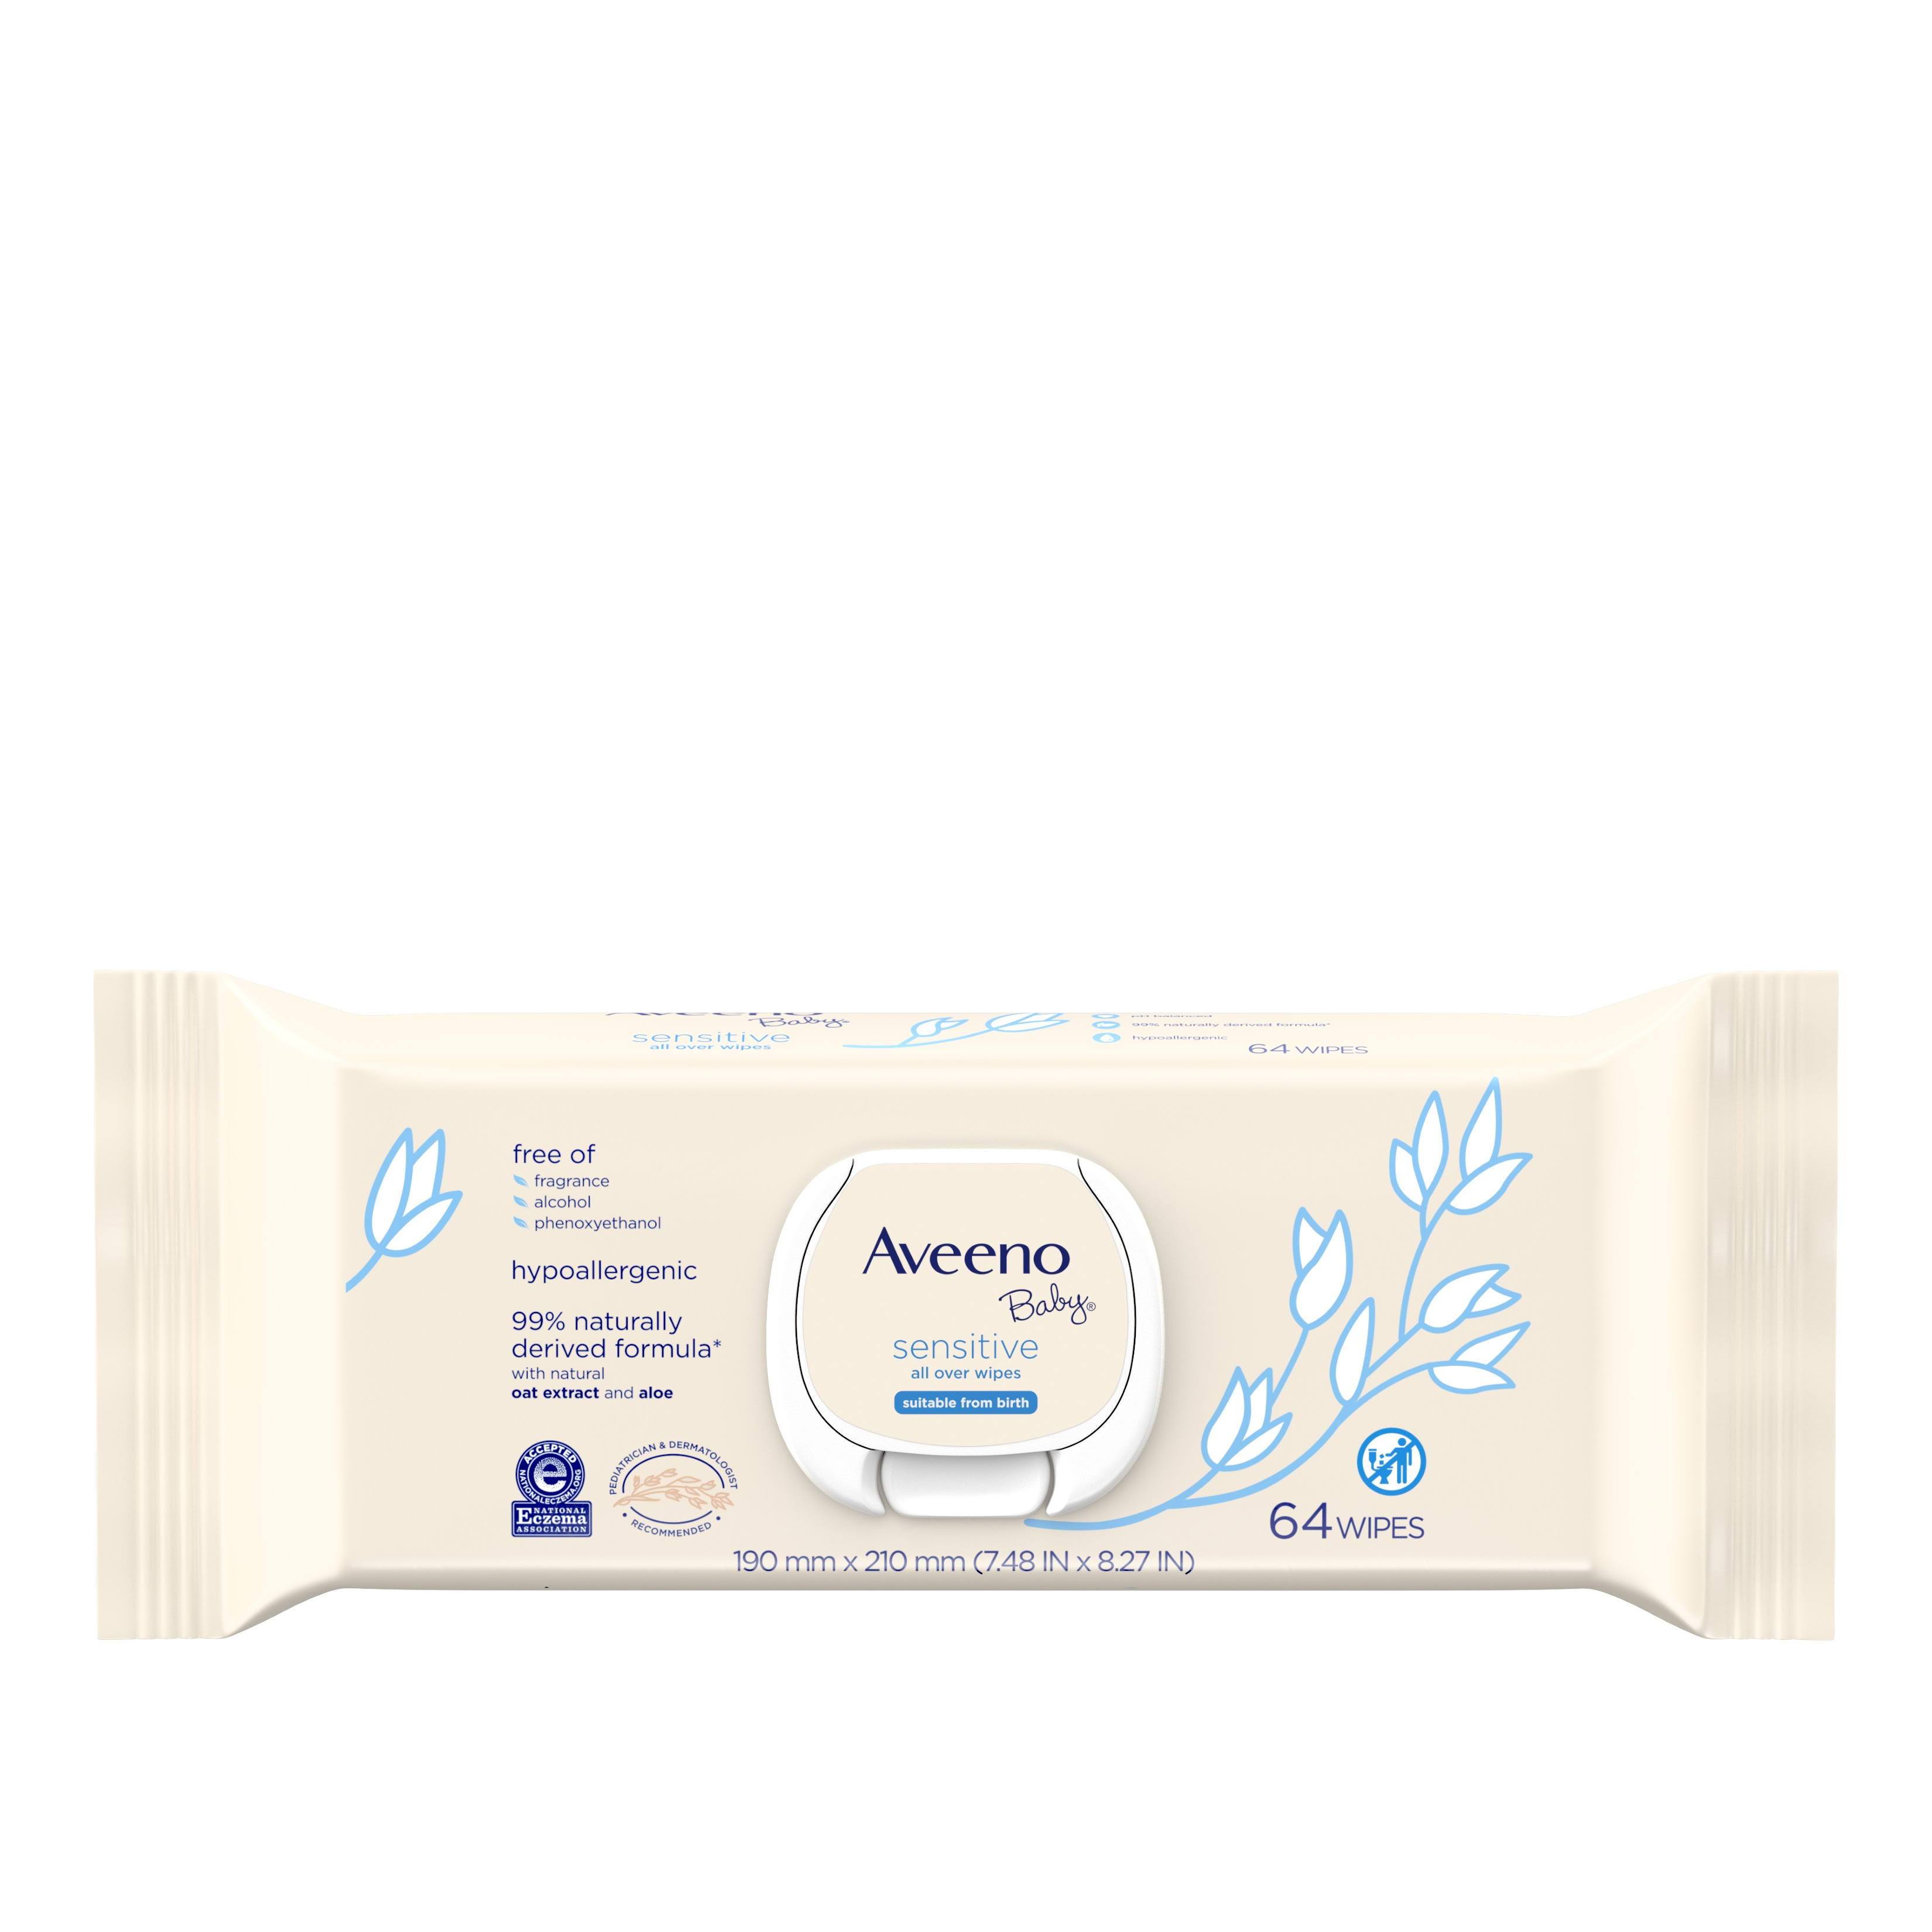 Aveeno Baby Sensitive All Over Wipes - 64 ct